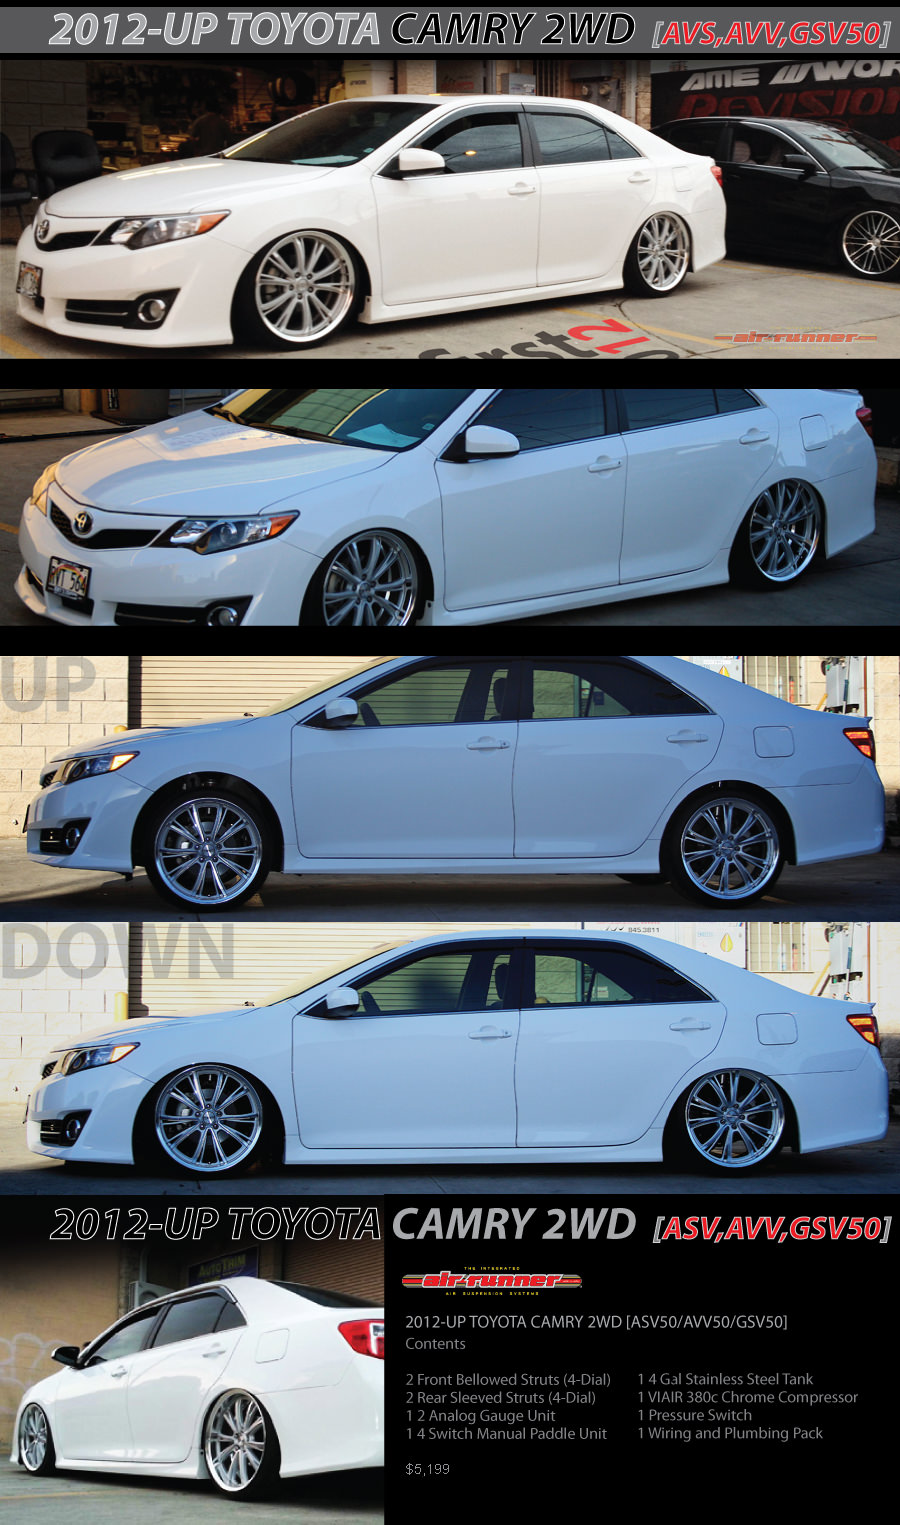 2012-UP TOYOTA CAMRY 2WD [ASV50/AVV50/GSV50] | Air Runner